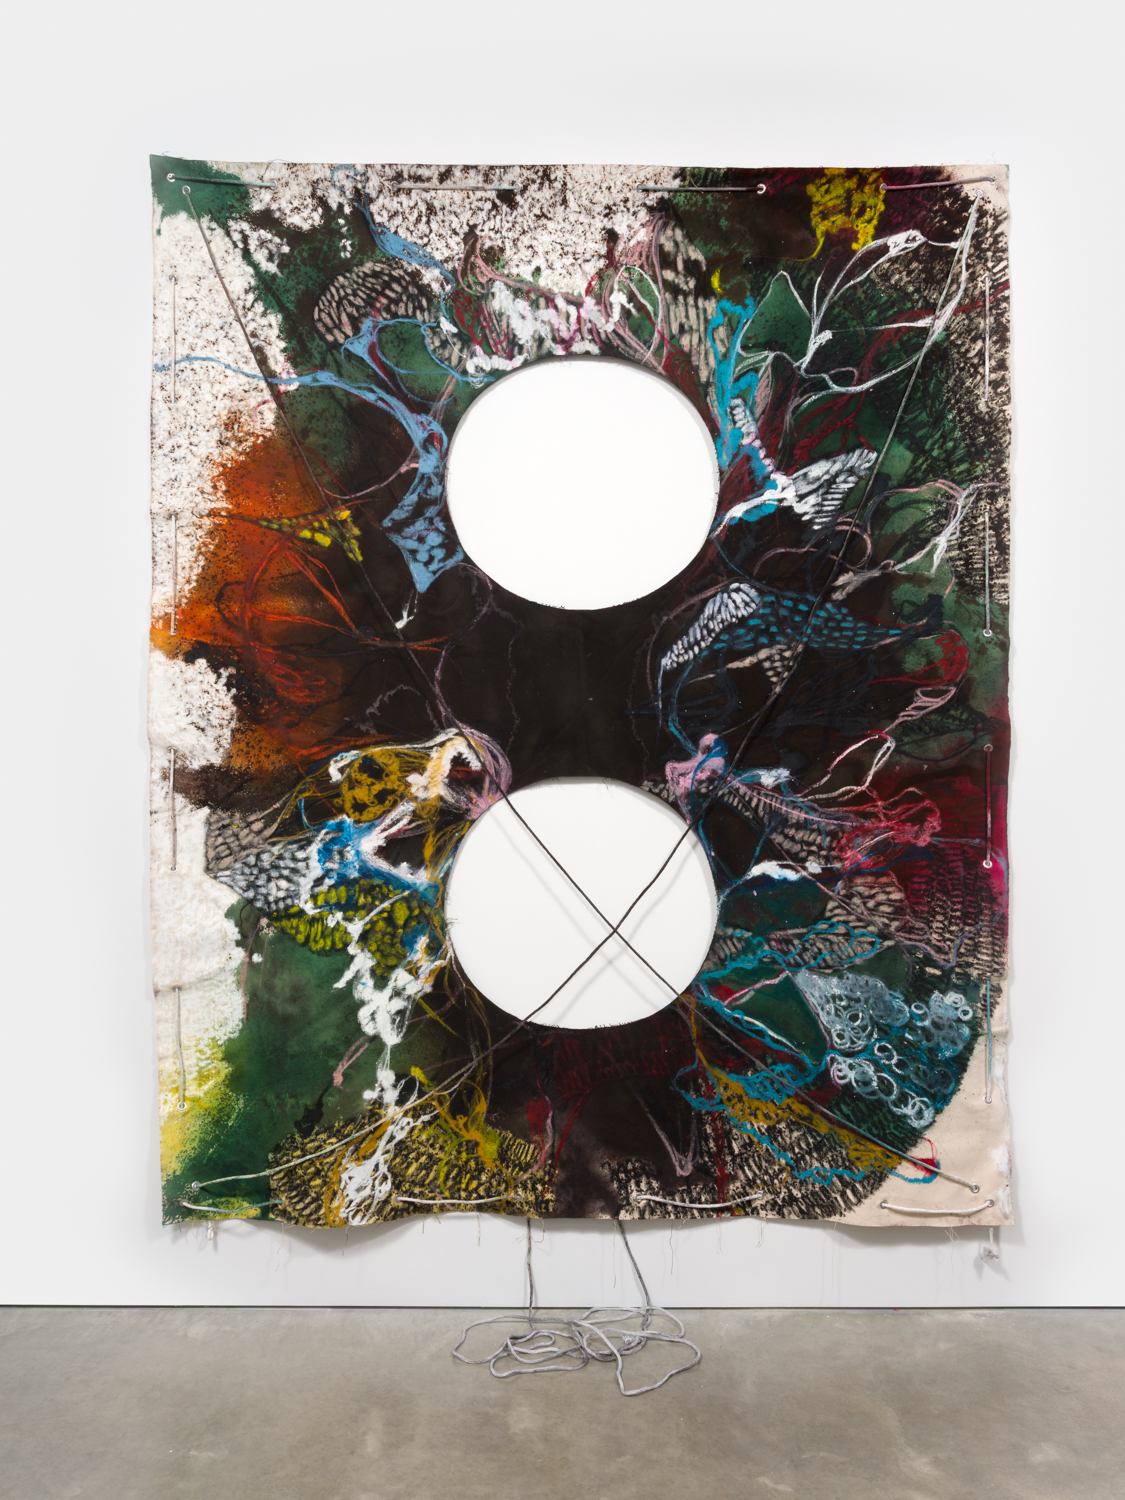 NaotakaHiro  Untitled (Mirror Lake)  2018 Canvas, fabric dye, oil pastel, rope and grommets 108h x 84w in NaoH033